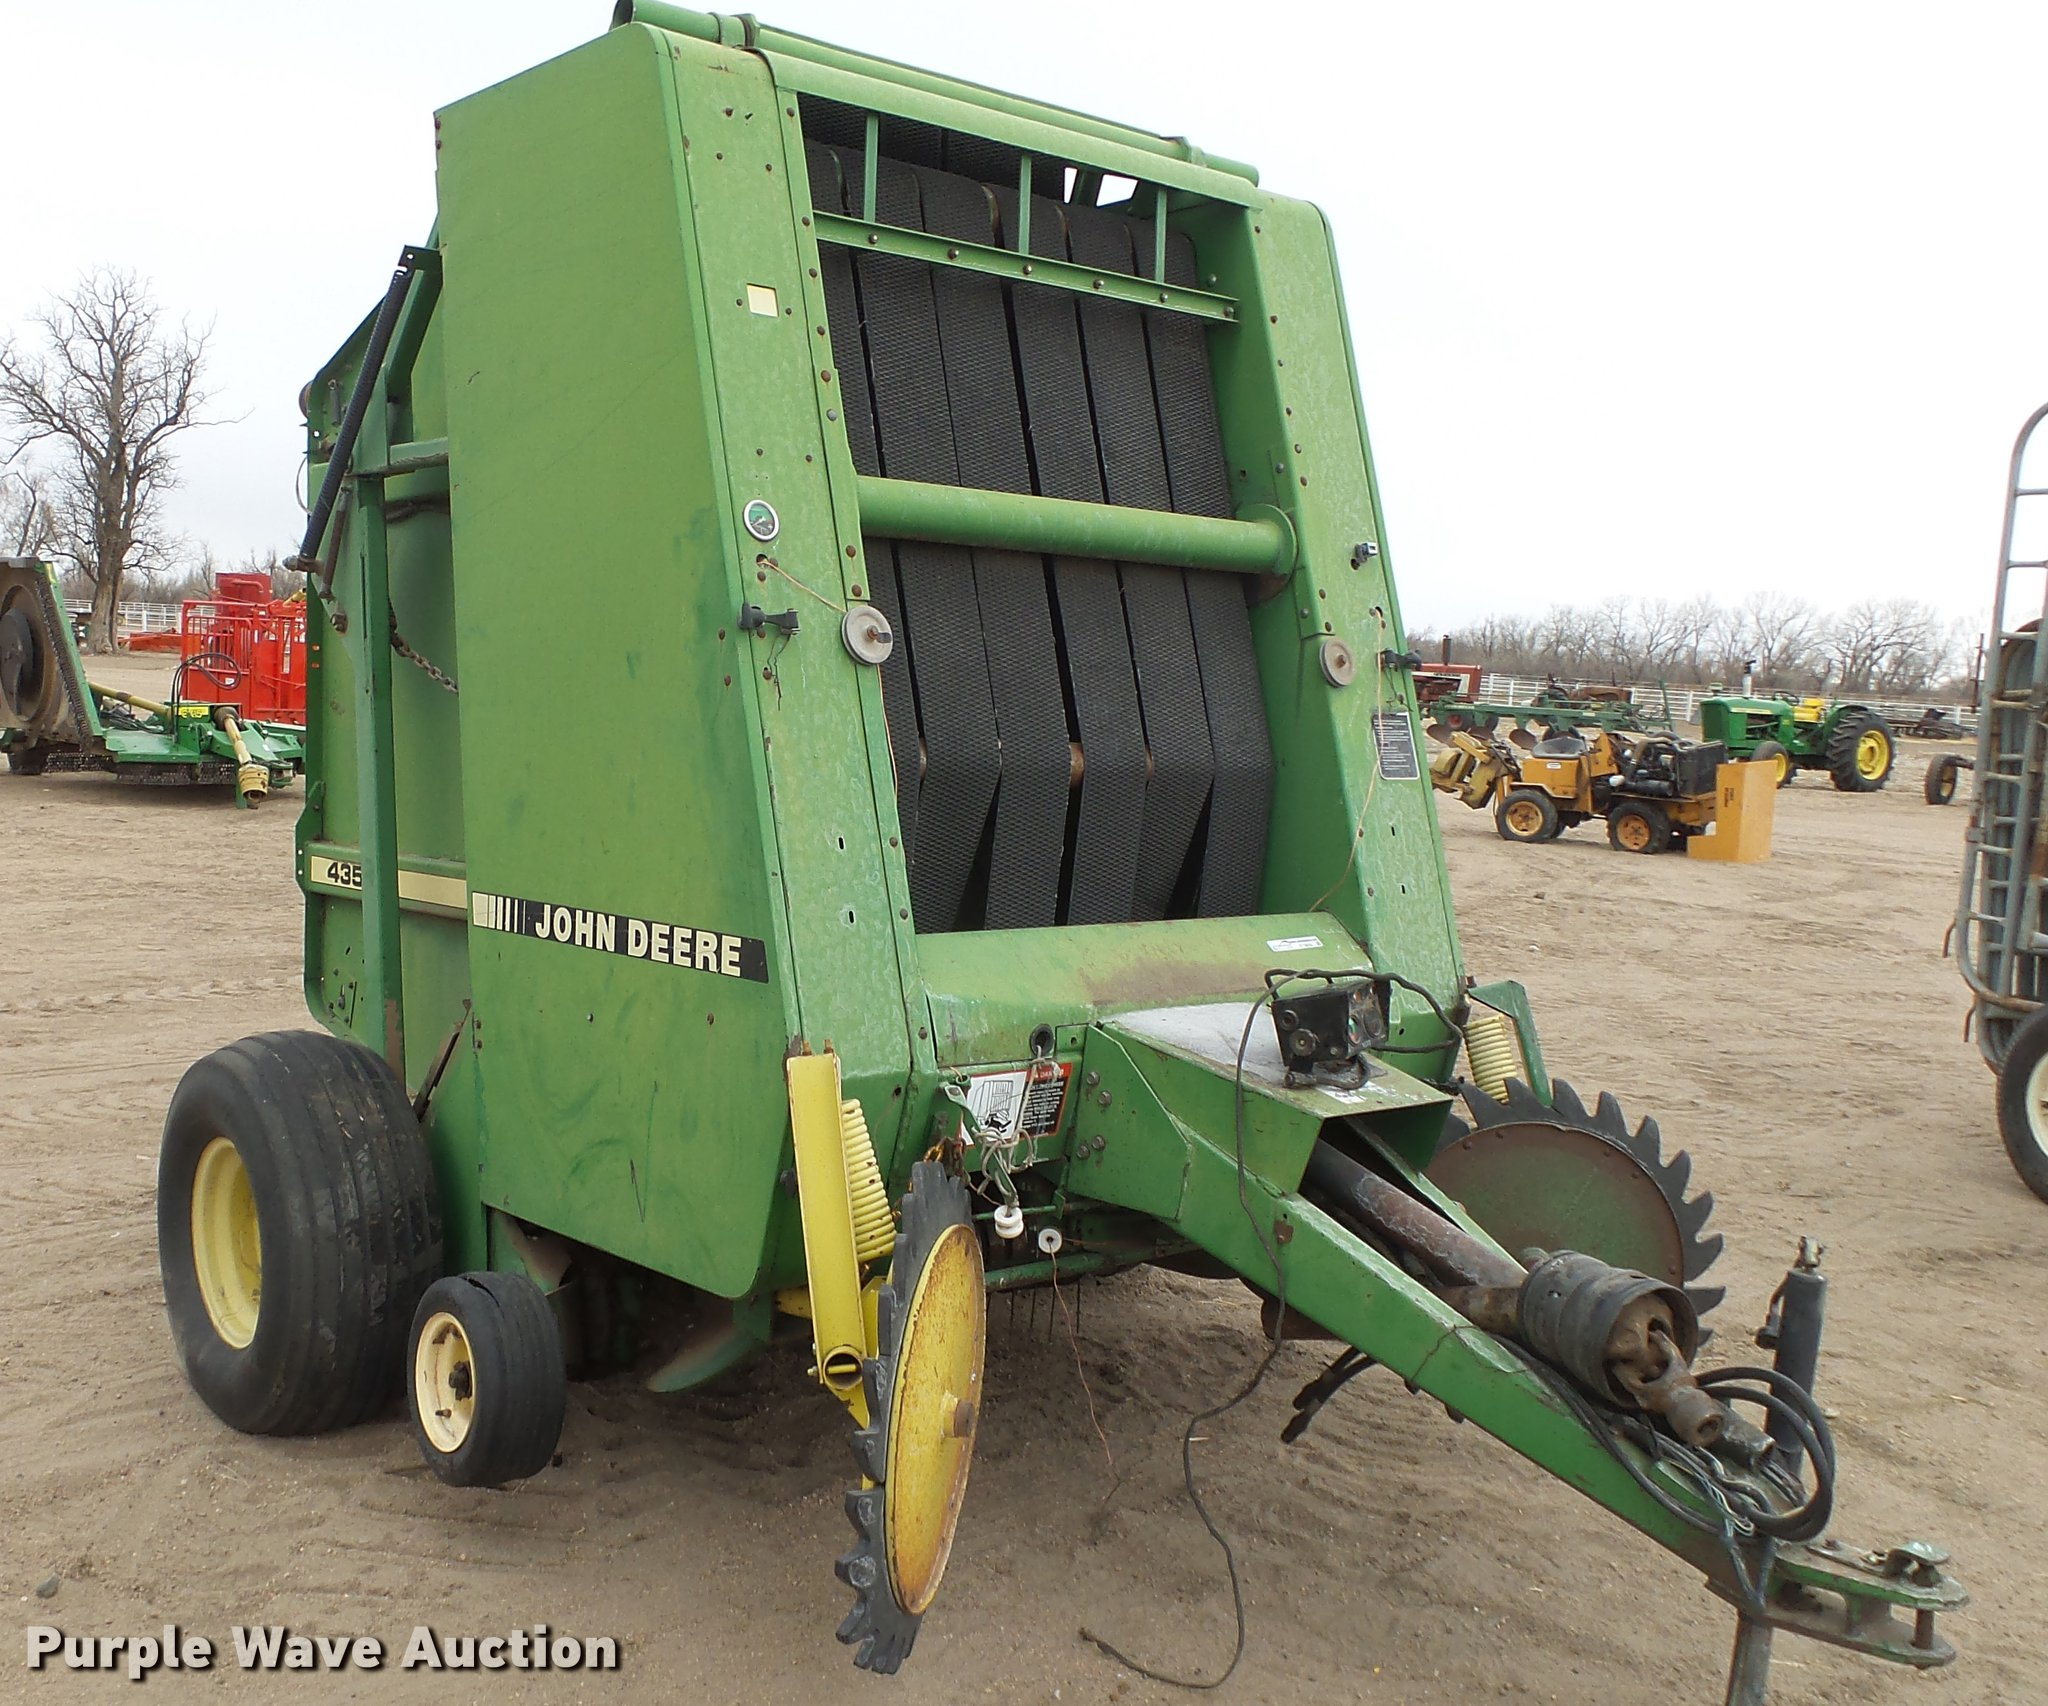 John Deere 435 round baler | Item EC9650 | SOLD! February 28